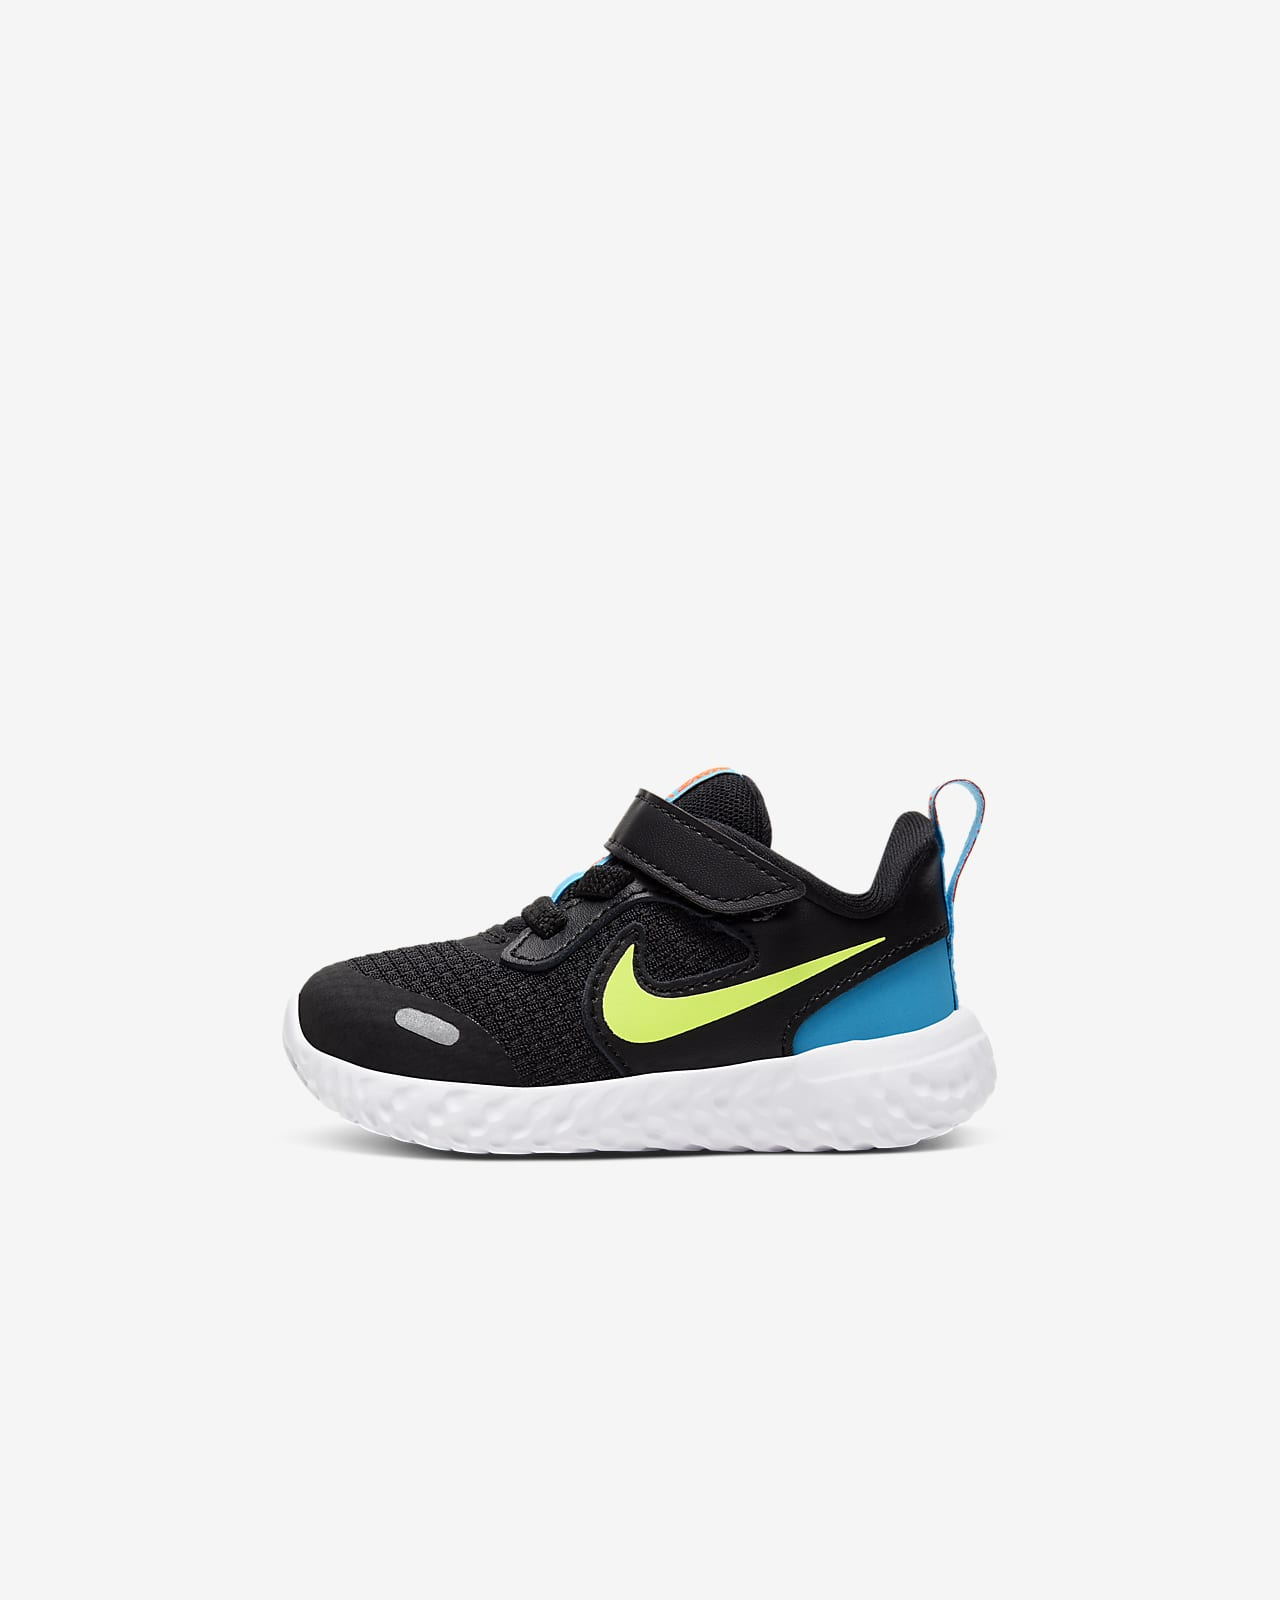 Nike Revolution 5 Baby/Toddler Shoe